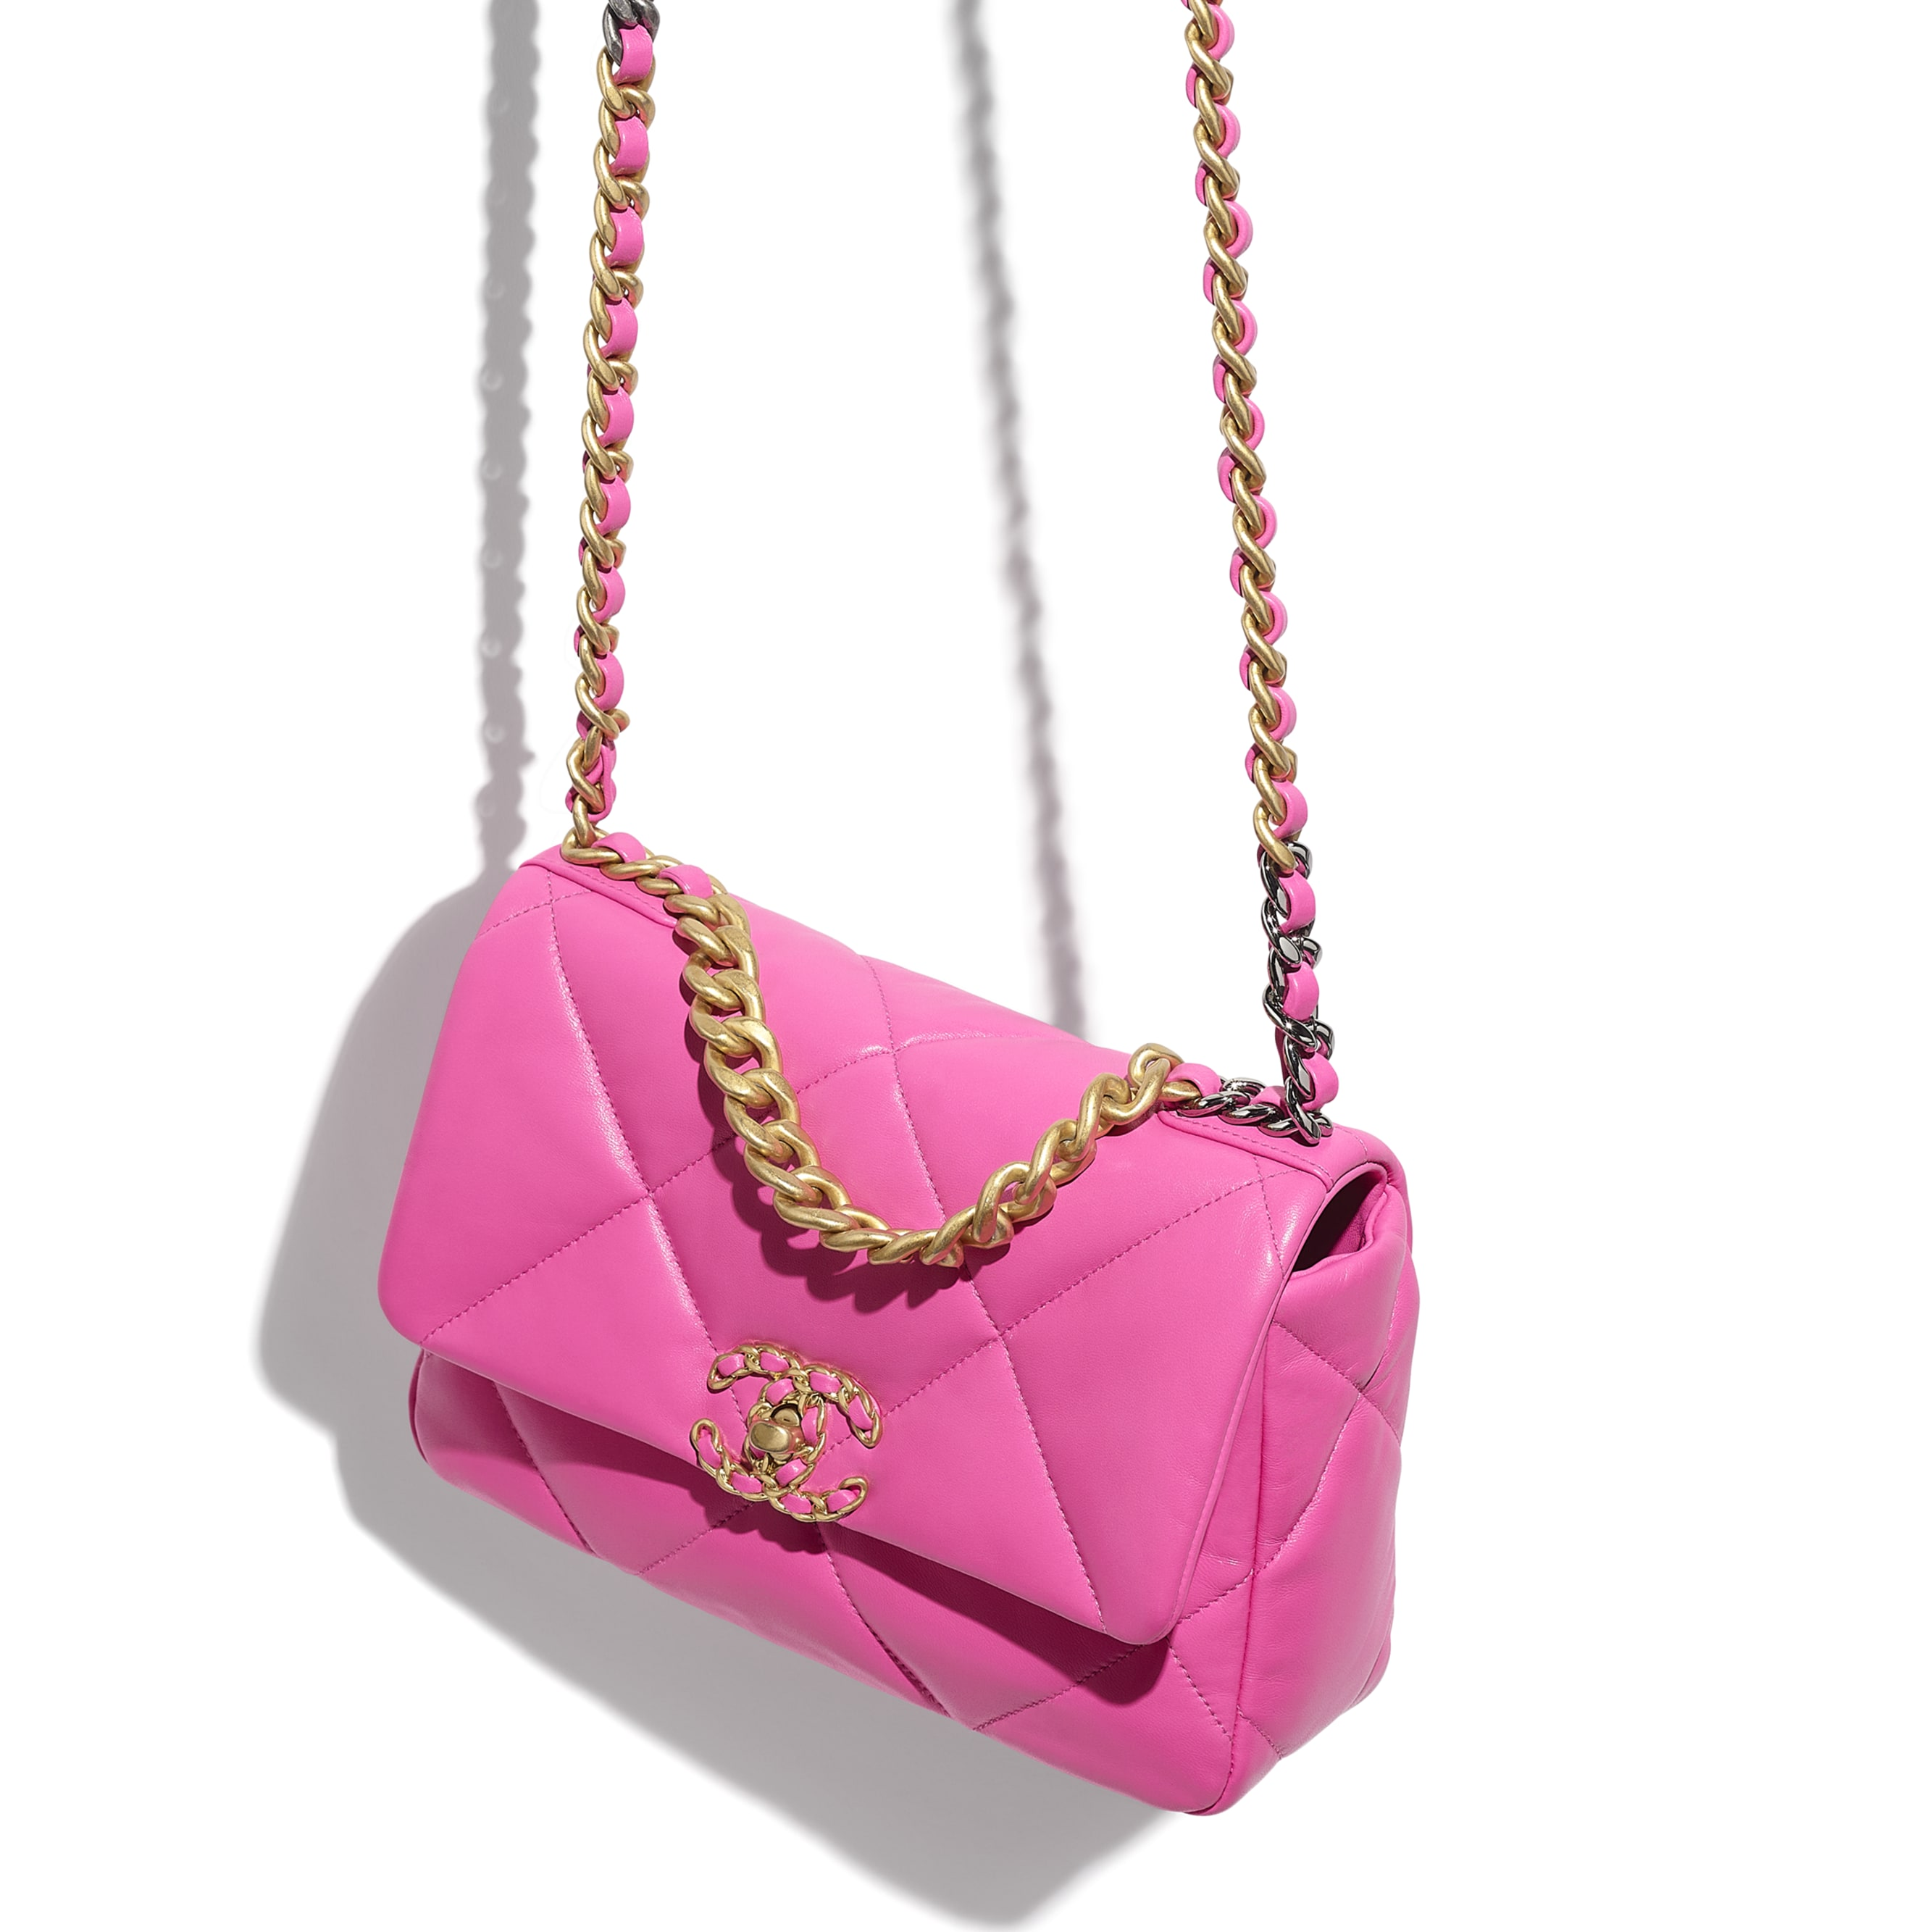 CHANEL 19 Flap Bag - Neon Pink - Shiny Lambskin, Gold-Tone, Silver-Tone & Ruthenium-Finish Metal - CHANEL - Extra view - see standard sized version